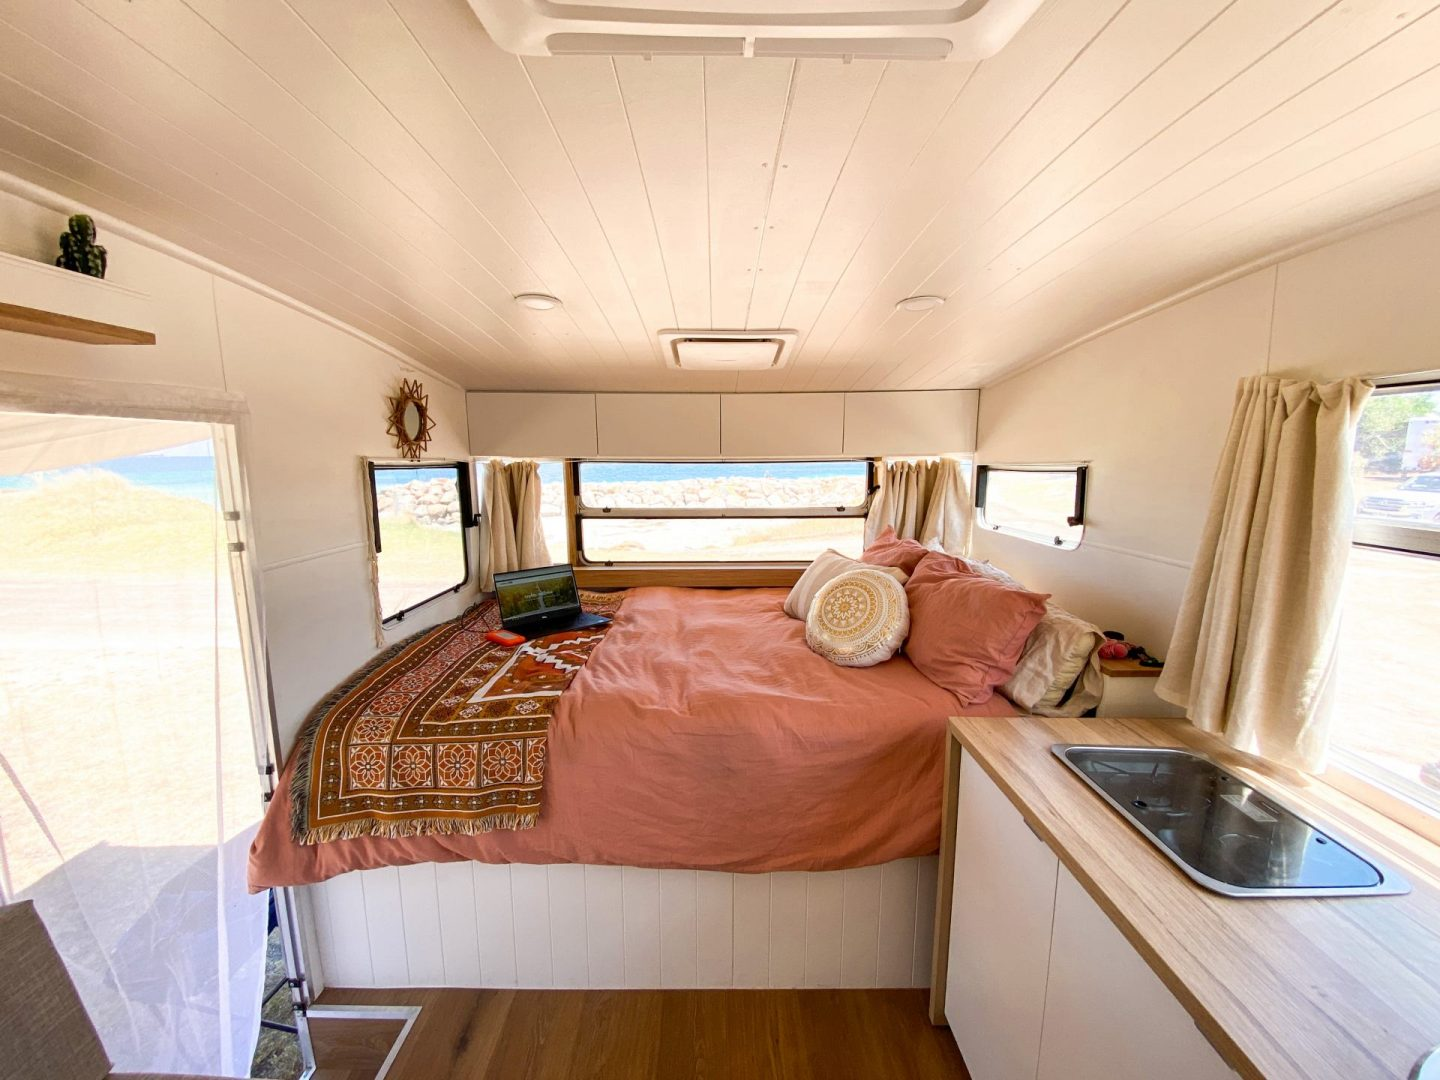 How To Renovate A Vintage Caravan: The Inside